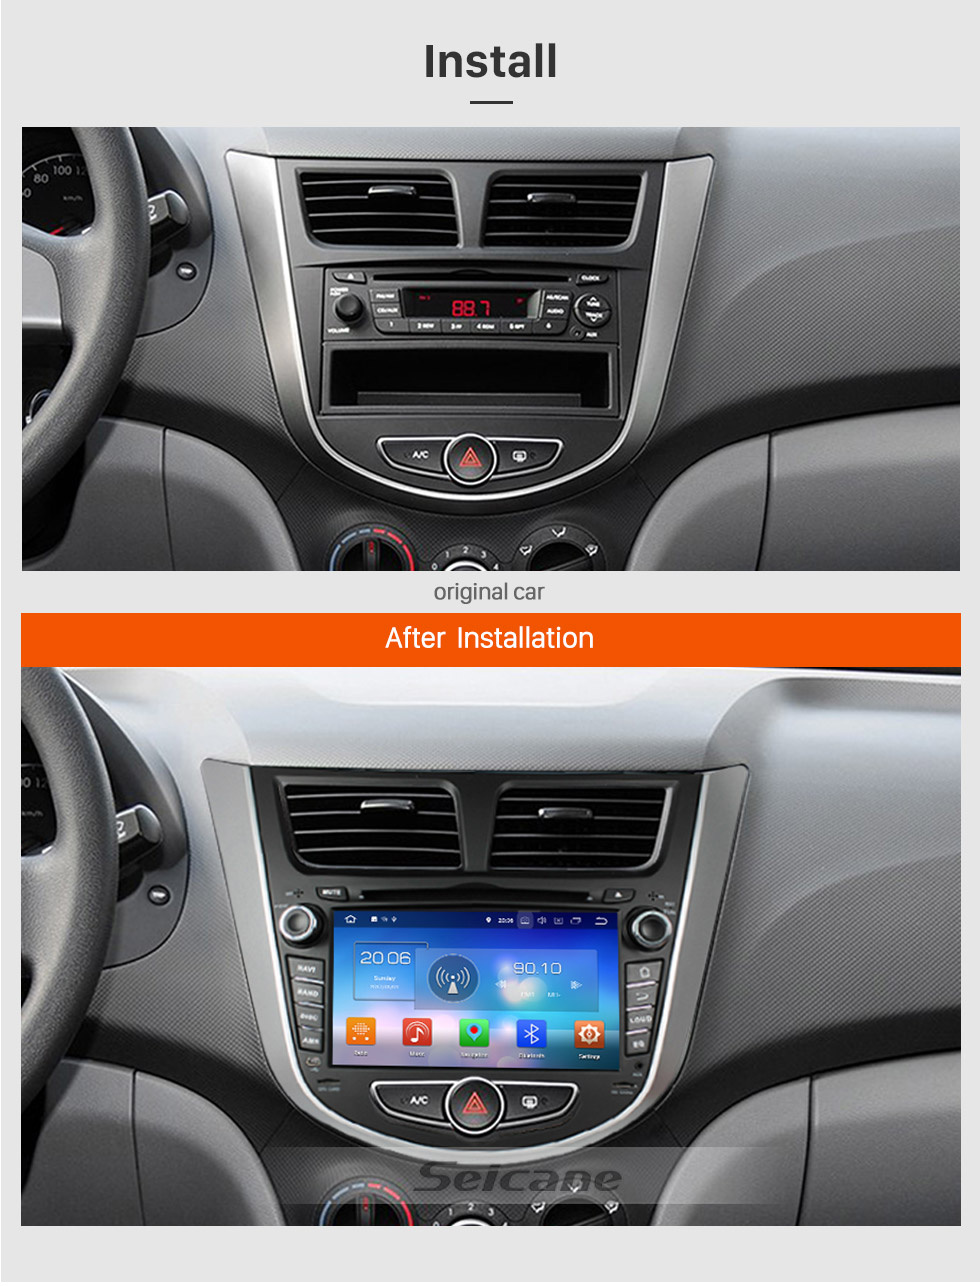 Seicane OEM 2011 2012 2013 Hyundai Verna Android 8.0 DVD player  GPS navigation system with Bluetooth Radio HD 1024*600 touch screen OBD2 DVR Rearview camera TV 1080P Video 3G WIFI Steering Wheel Control  USB Mirror link